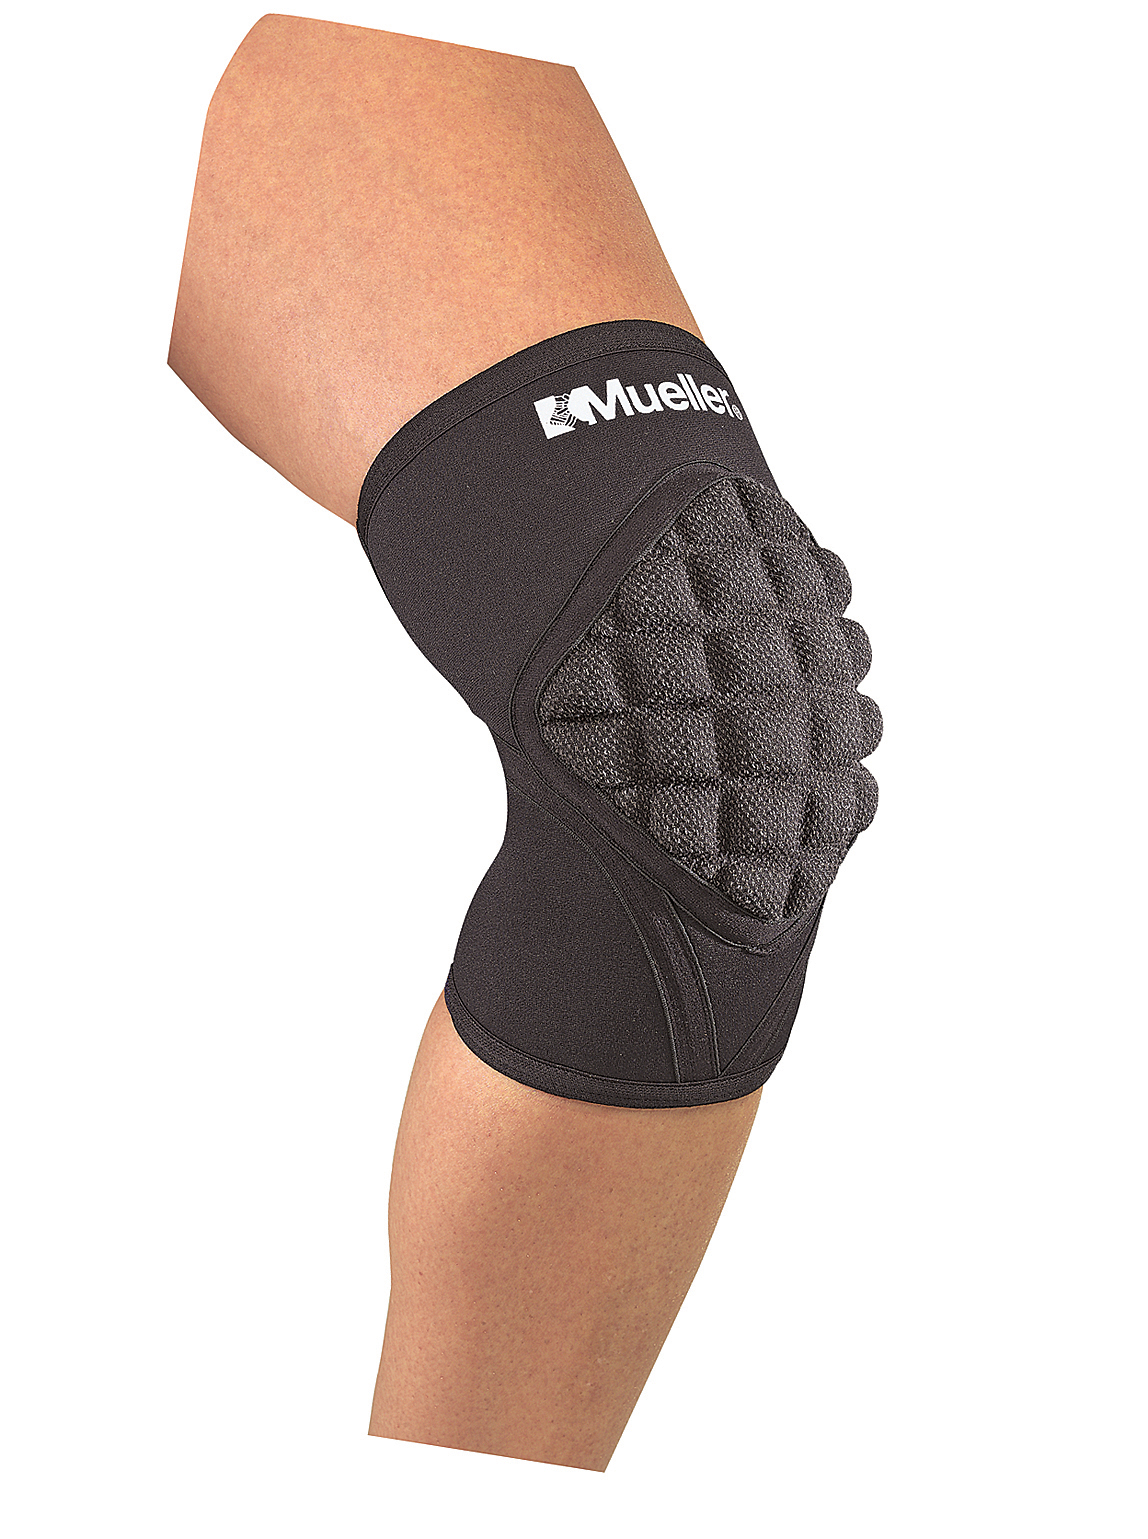 pro-level-knee-pad-w-kevlar-sm-54531-74676545318-lr.jpg